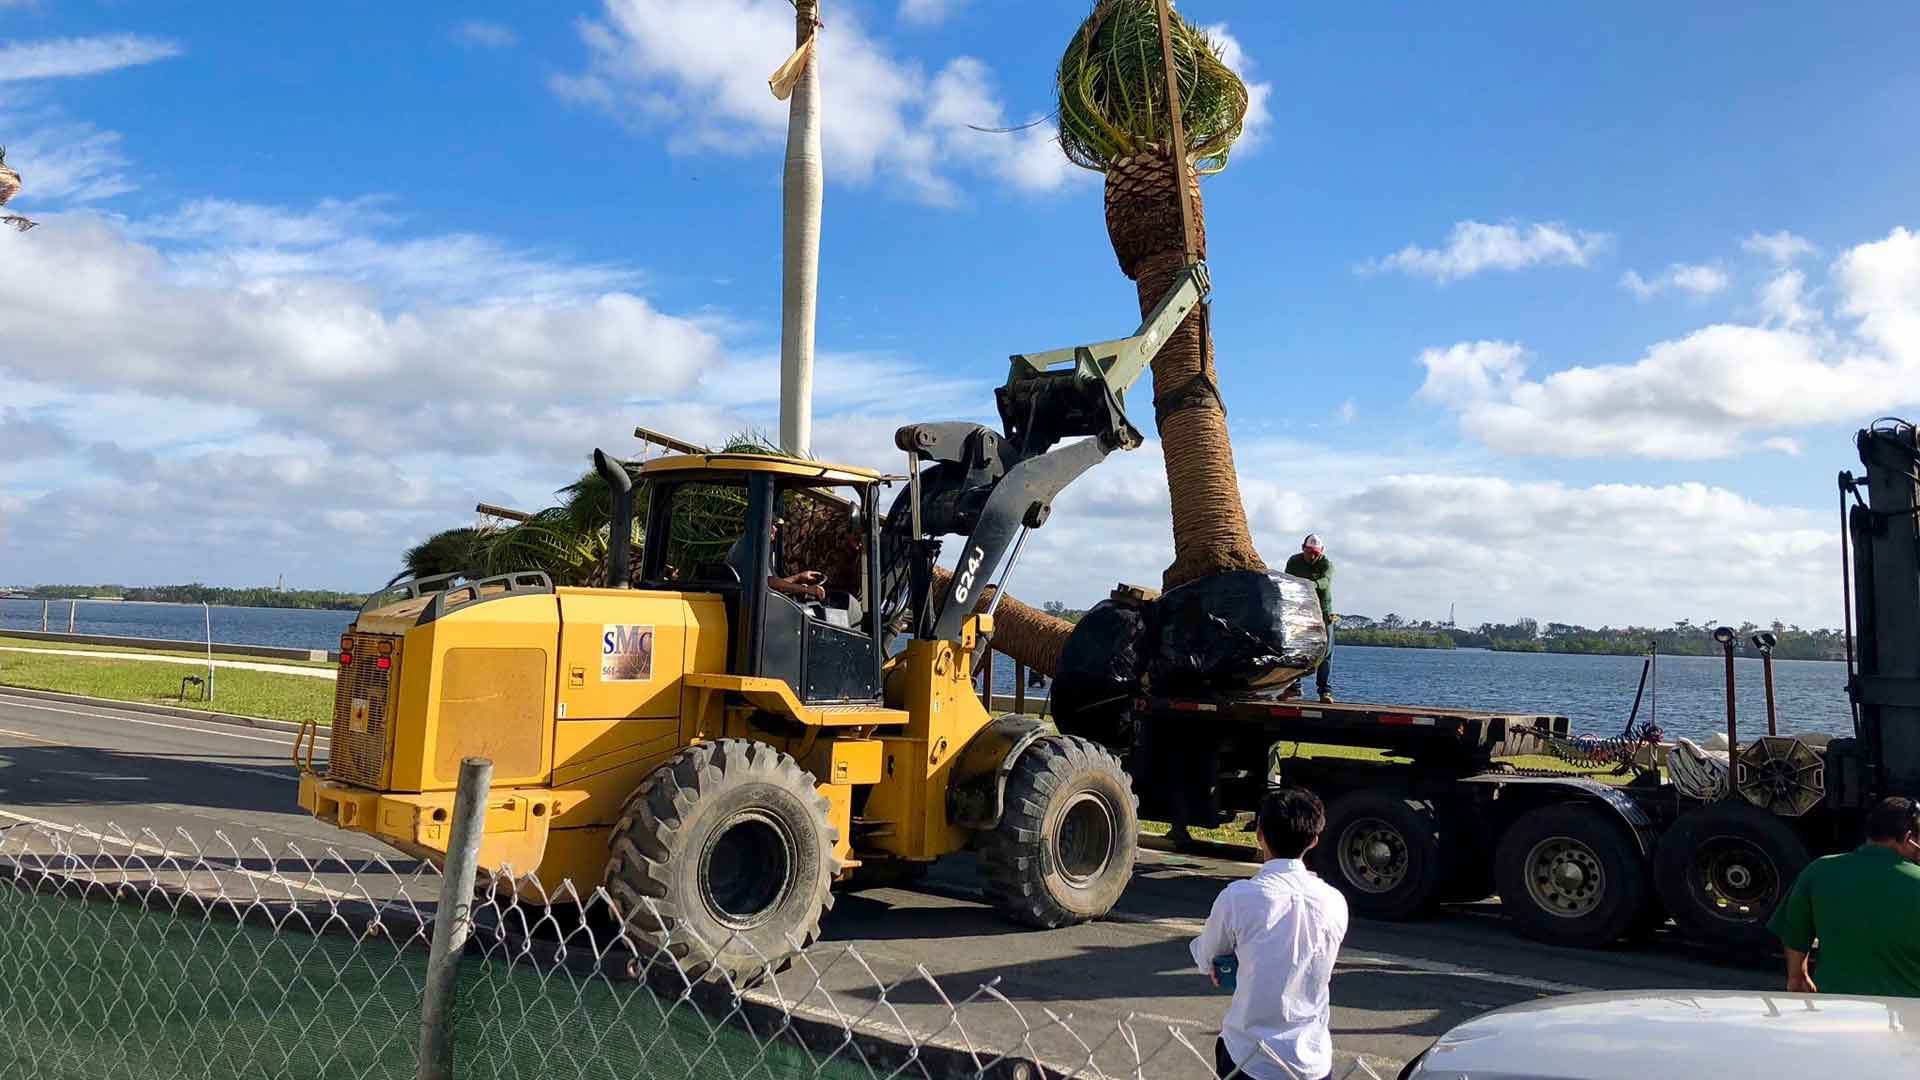 Very large palm tree being planted at a commercial property in Palm Beach, FL.